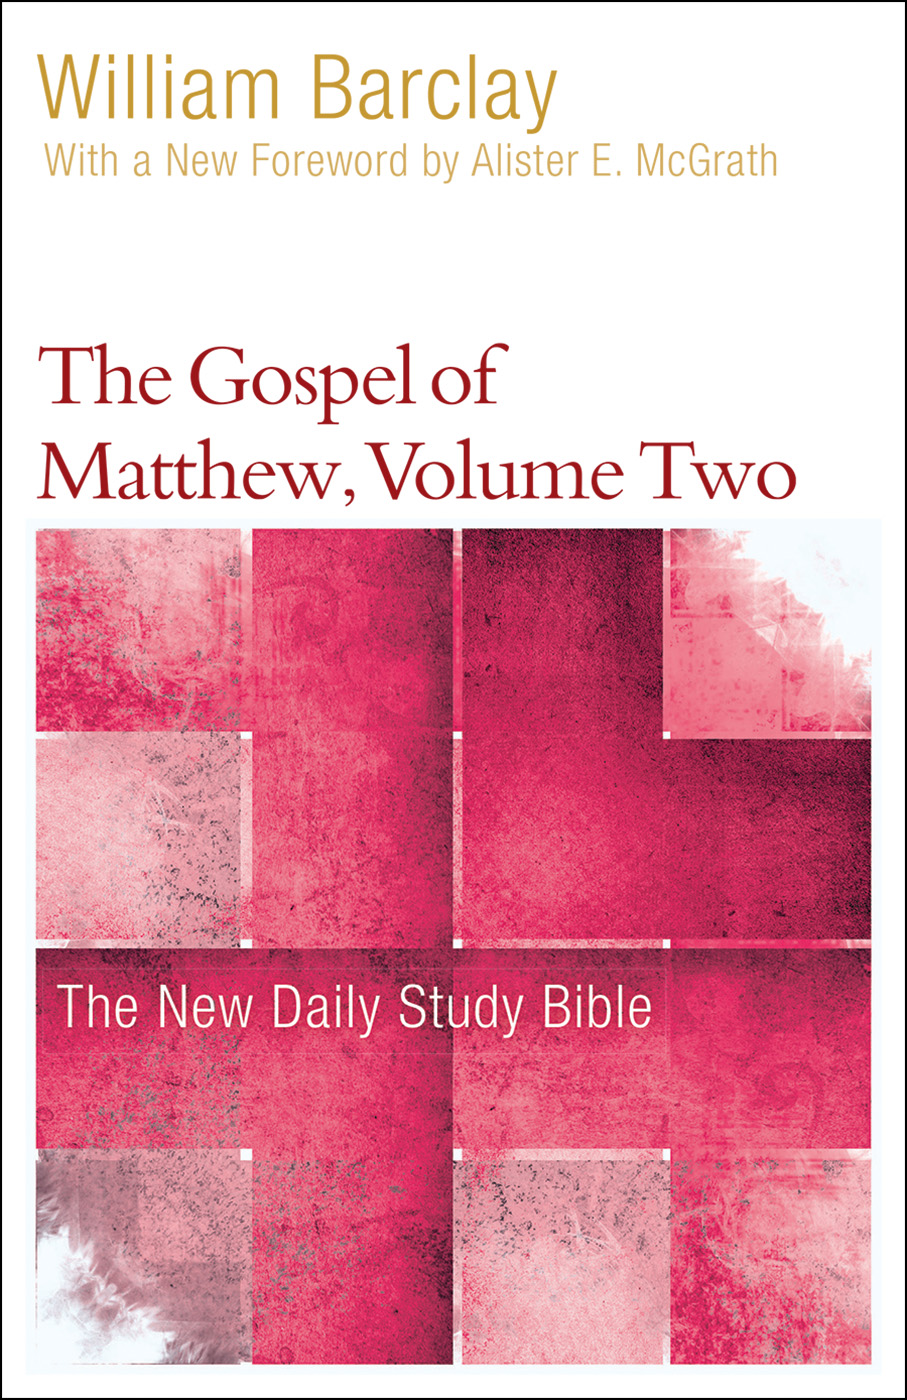 The Gospel of Matthew, Volume Two